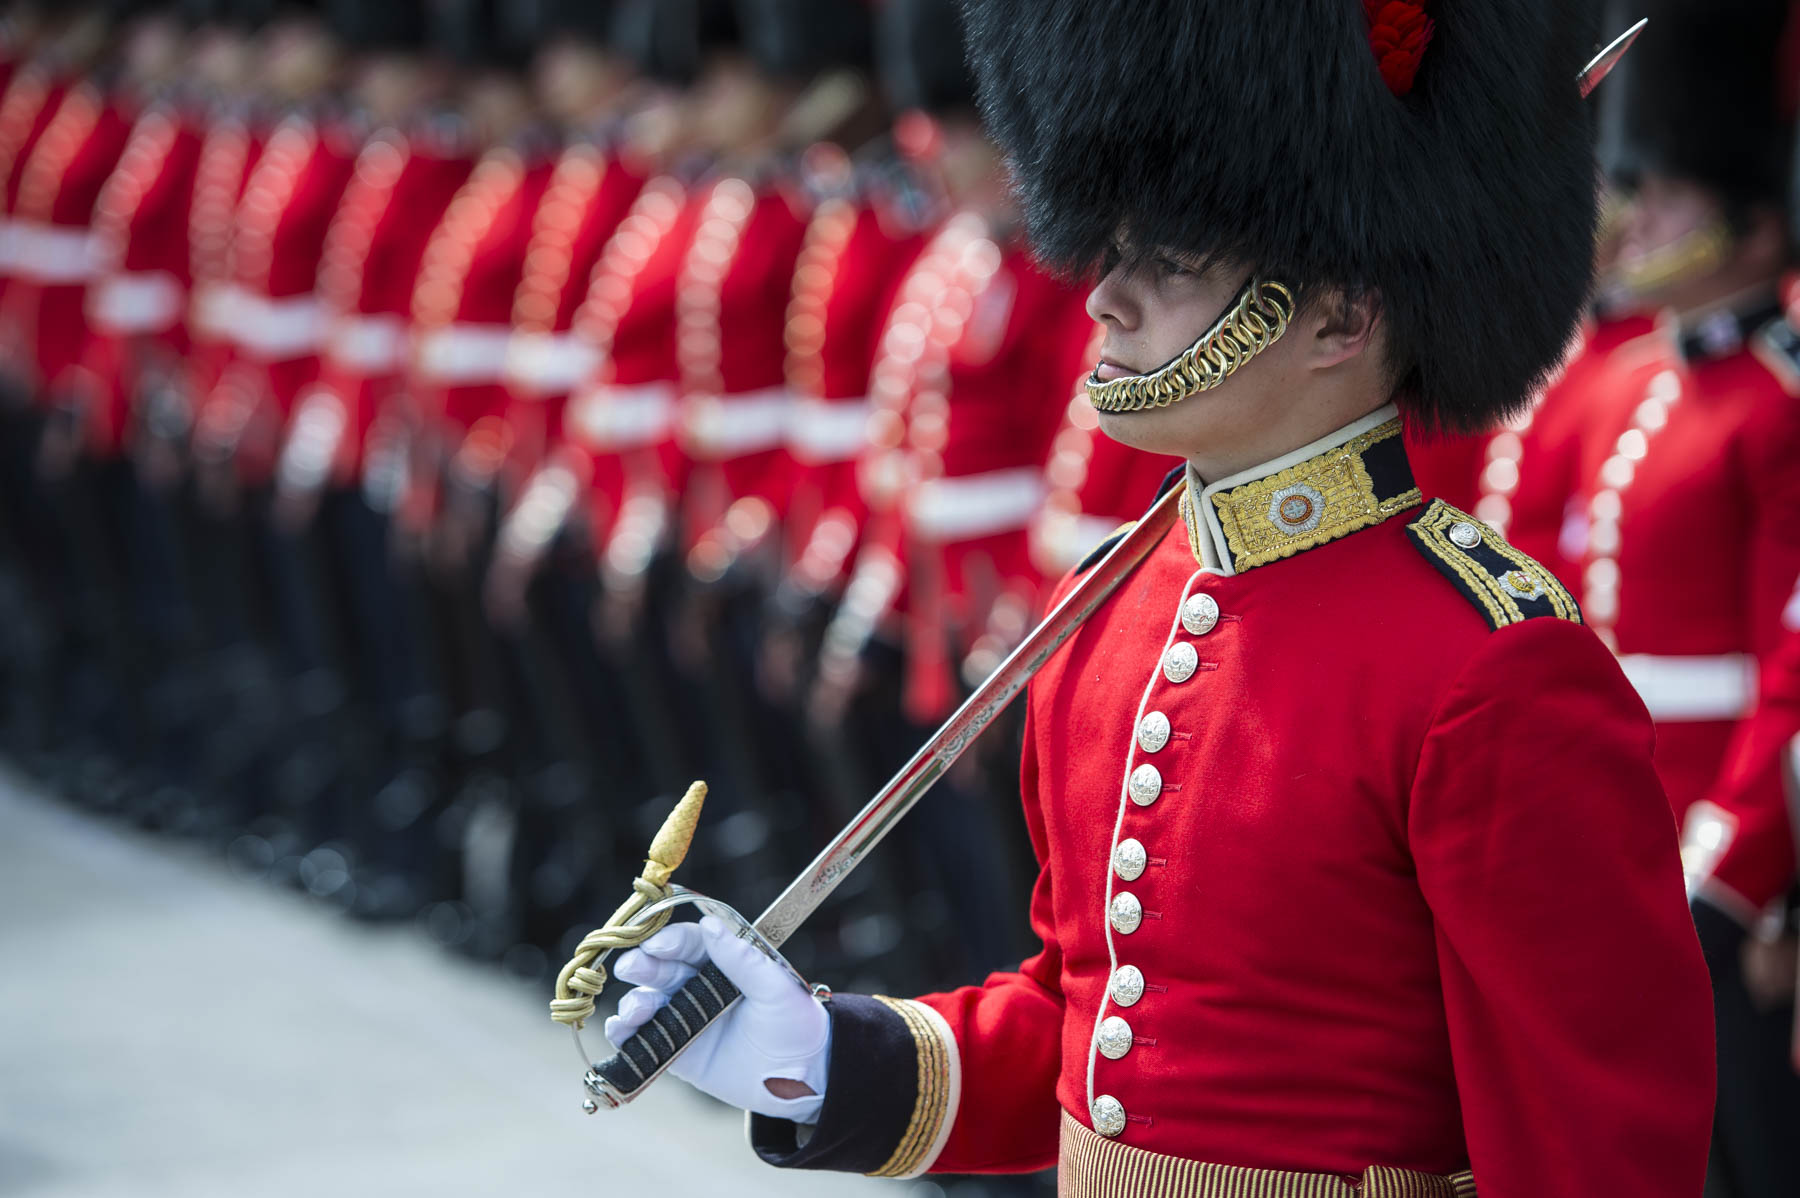 The Ceremonial Guard includes members of regiments from across the country.